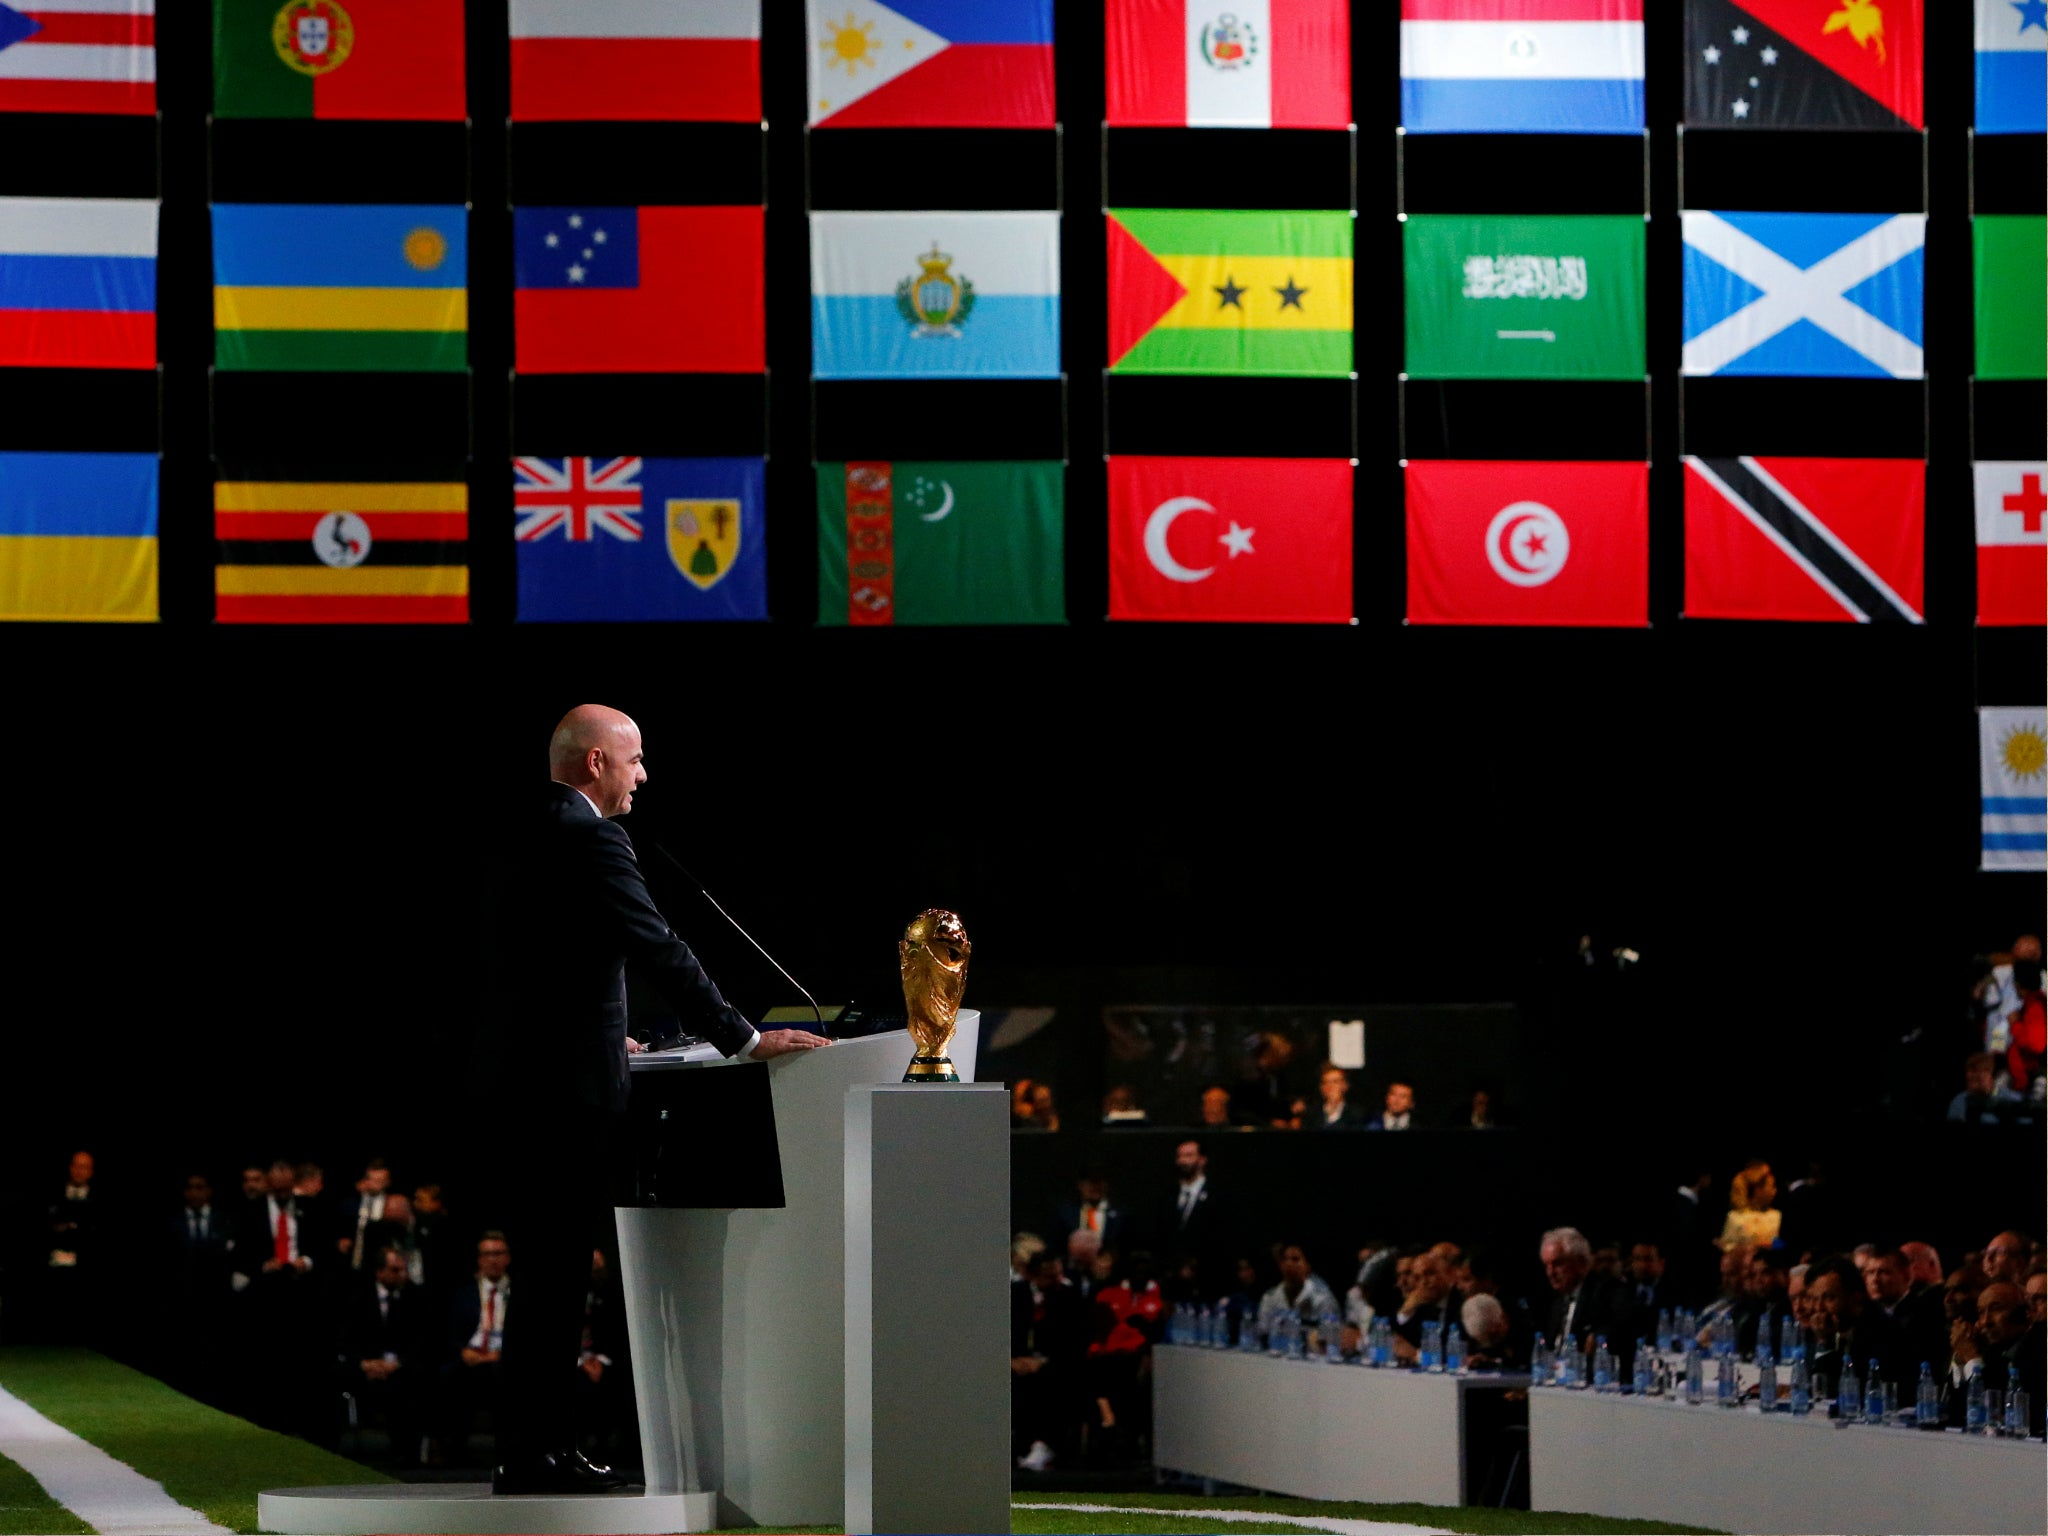 World Cup 2026 visas will be processed quickly, Trump says